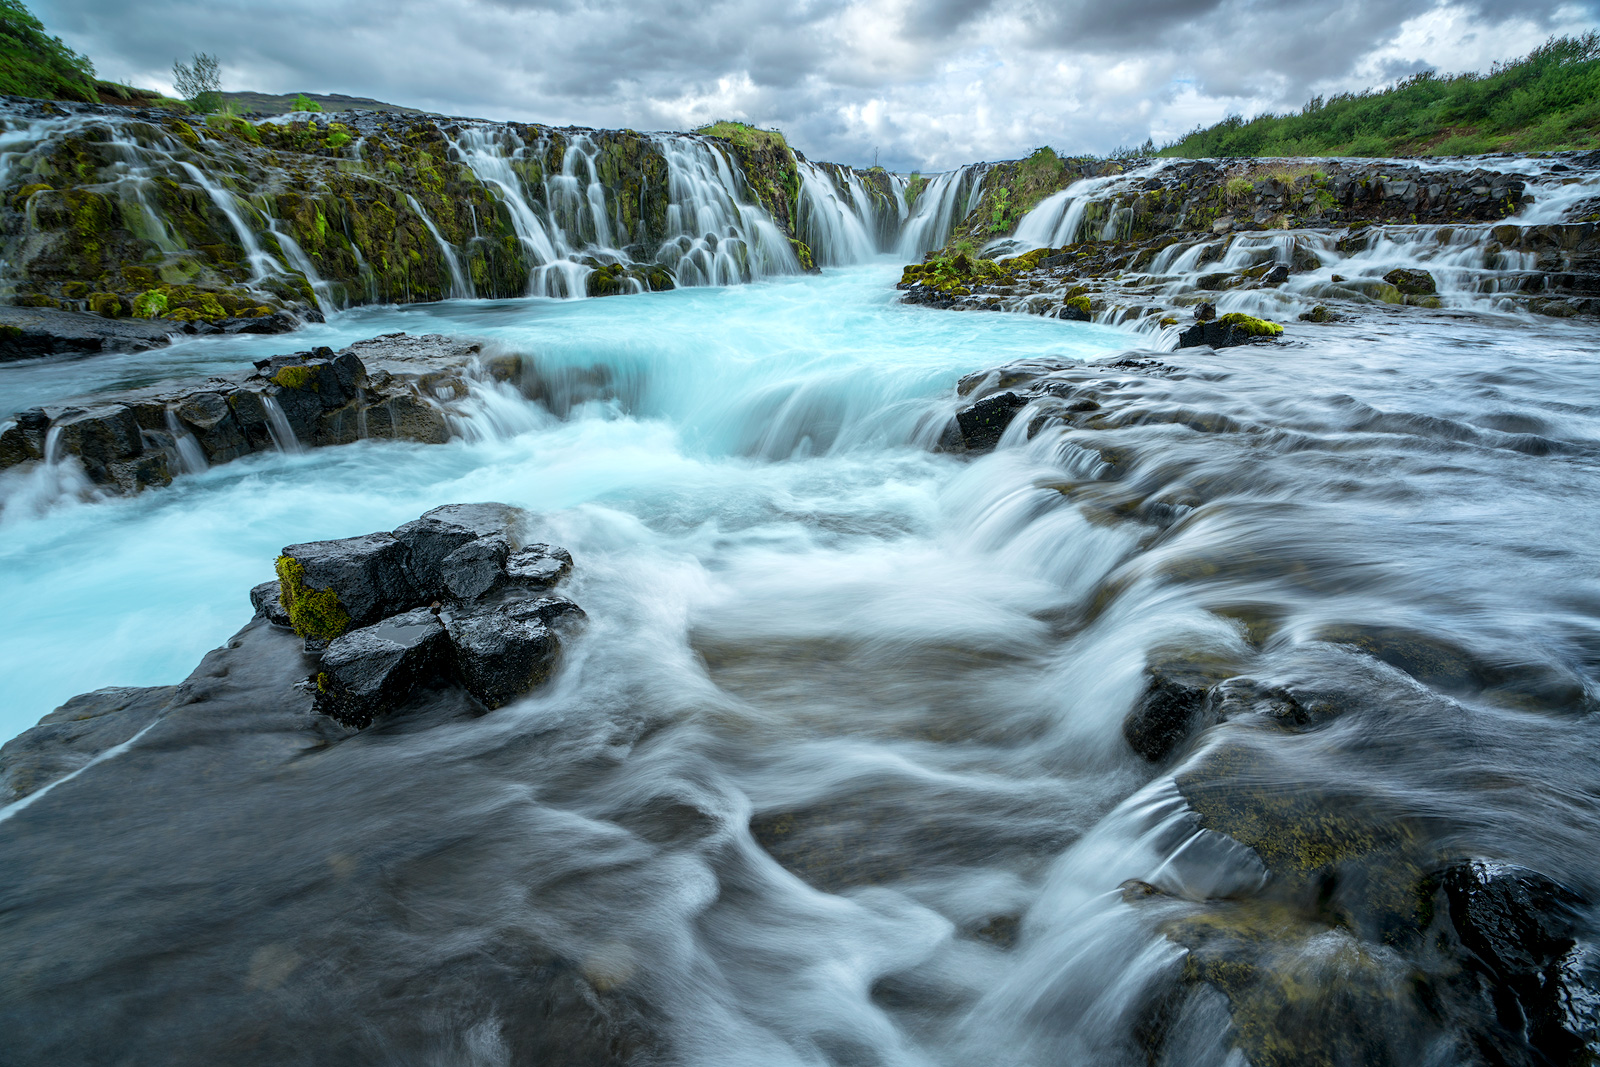 Bruarfoss, Iceland, water falls, aqua, color, wide angle, sony a7rii, Bernard Chen, photo